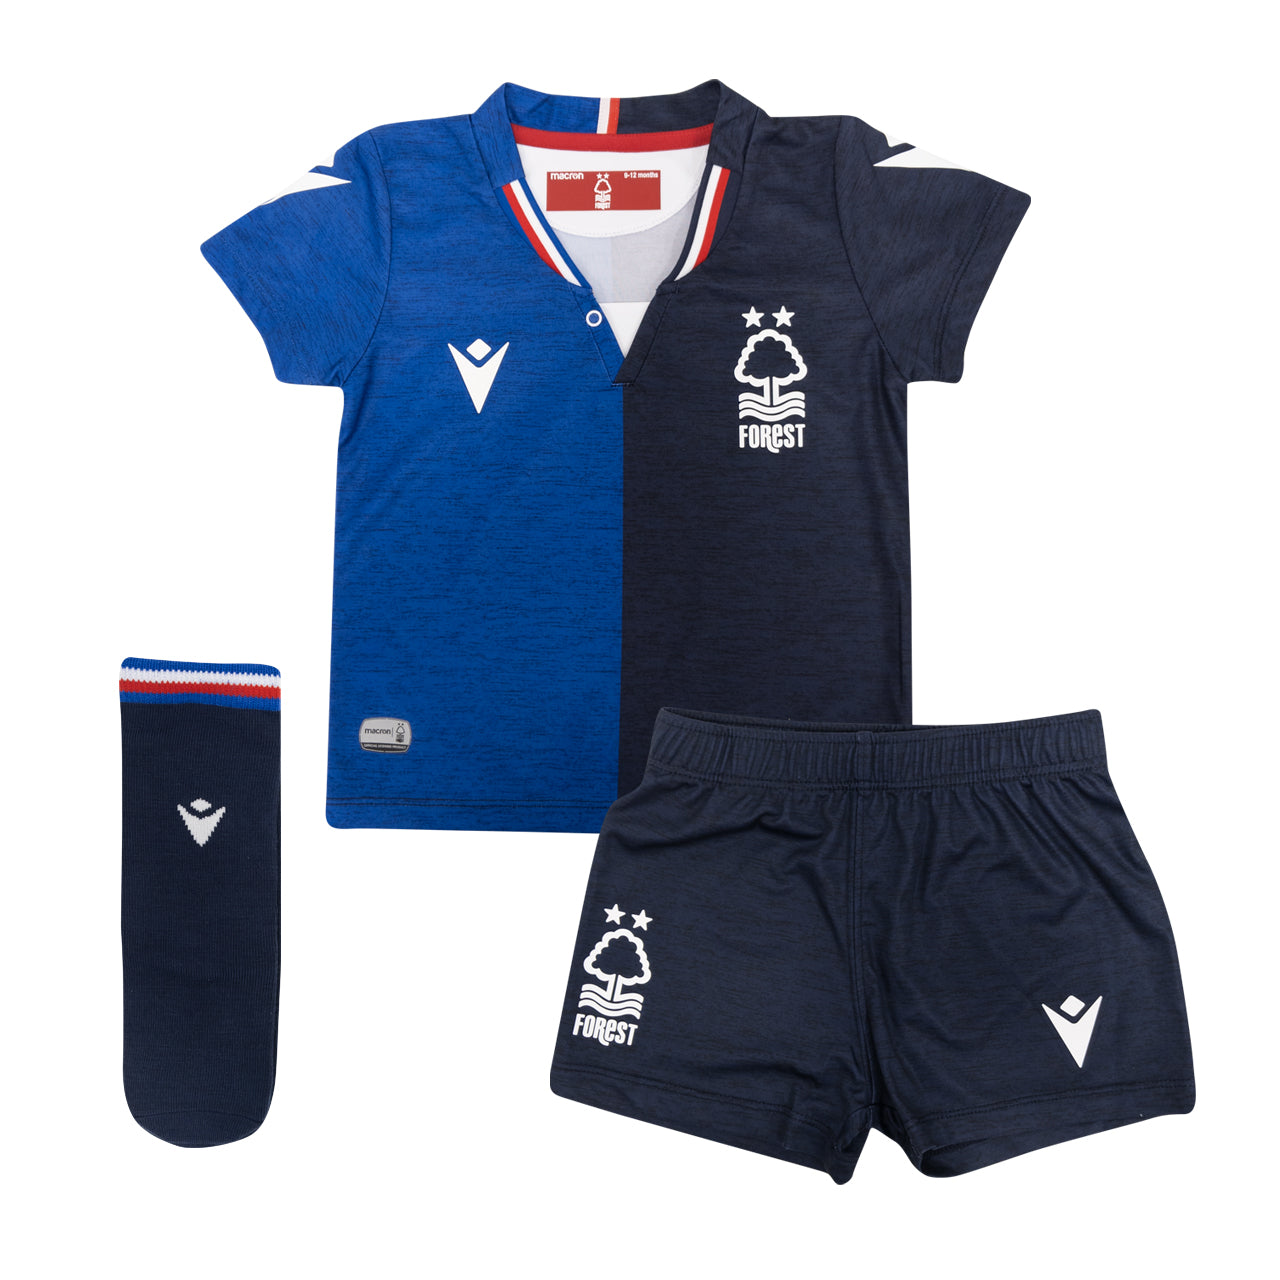 NFFC Baby Away Kit 2019/20 - Nottingham Forest